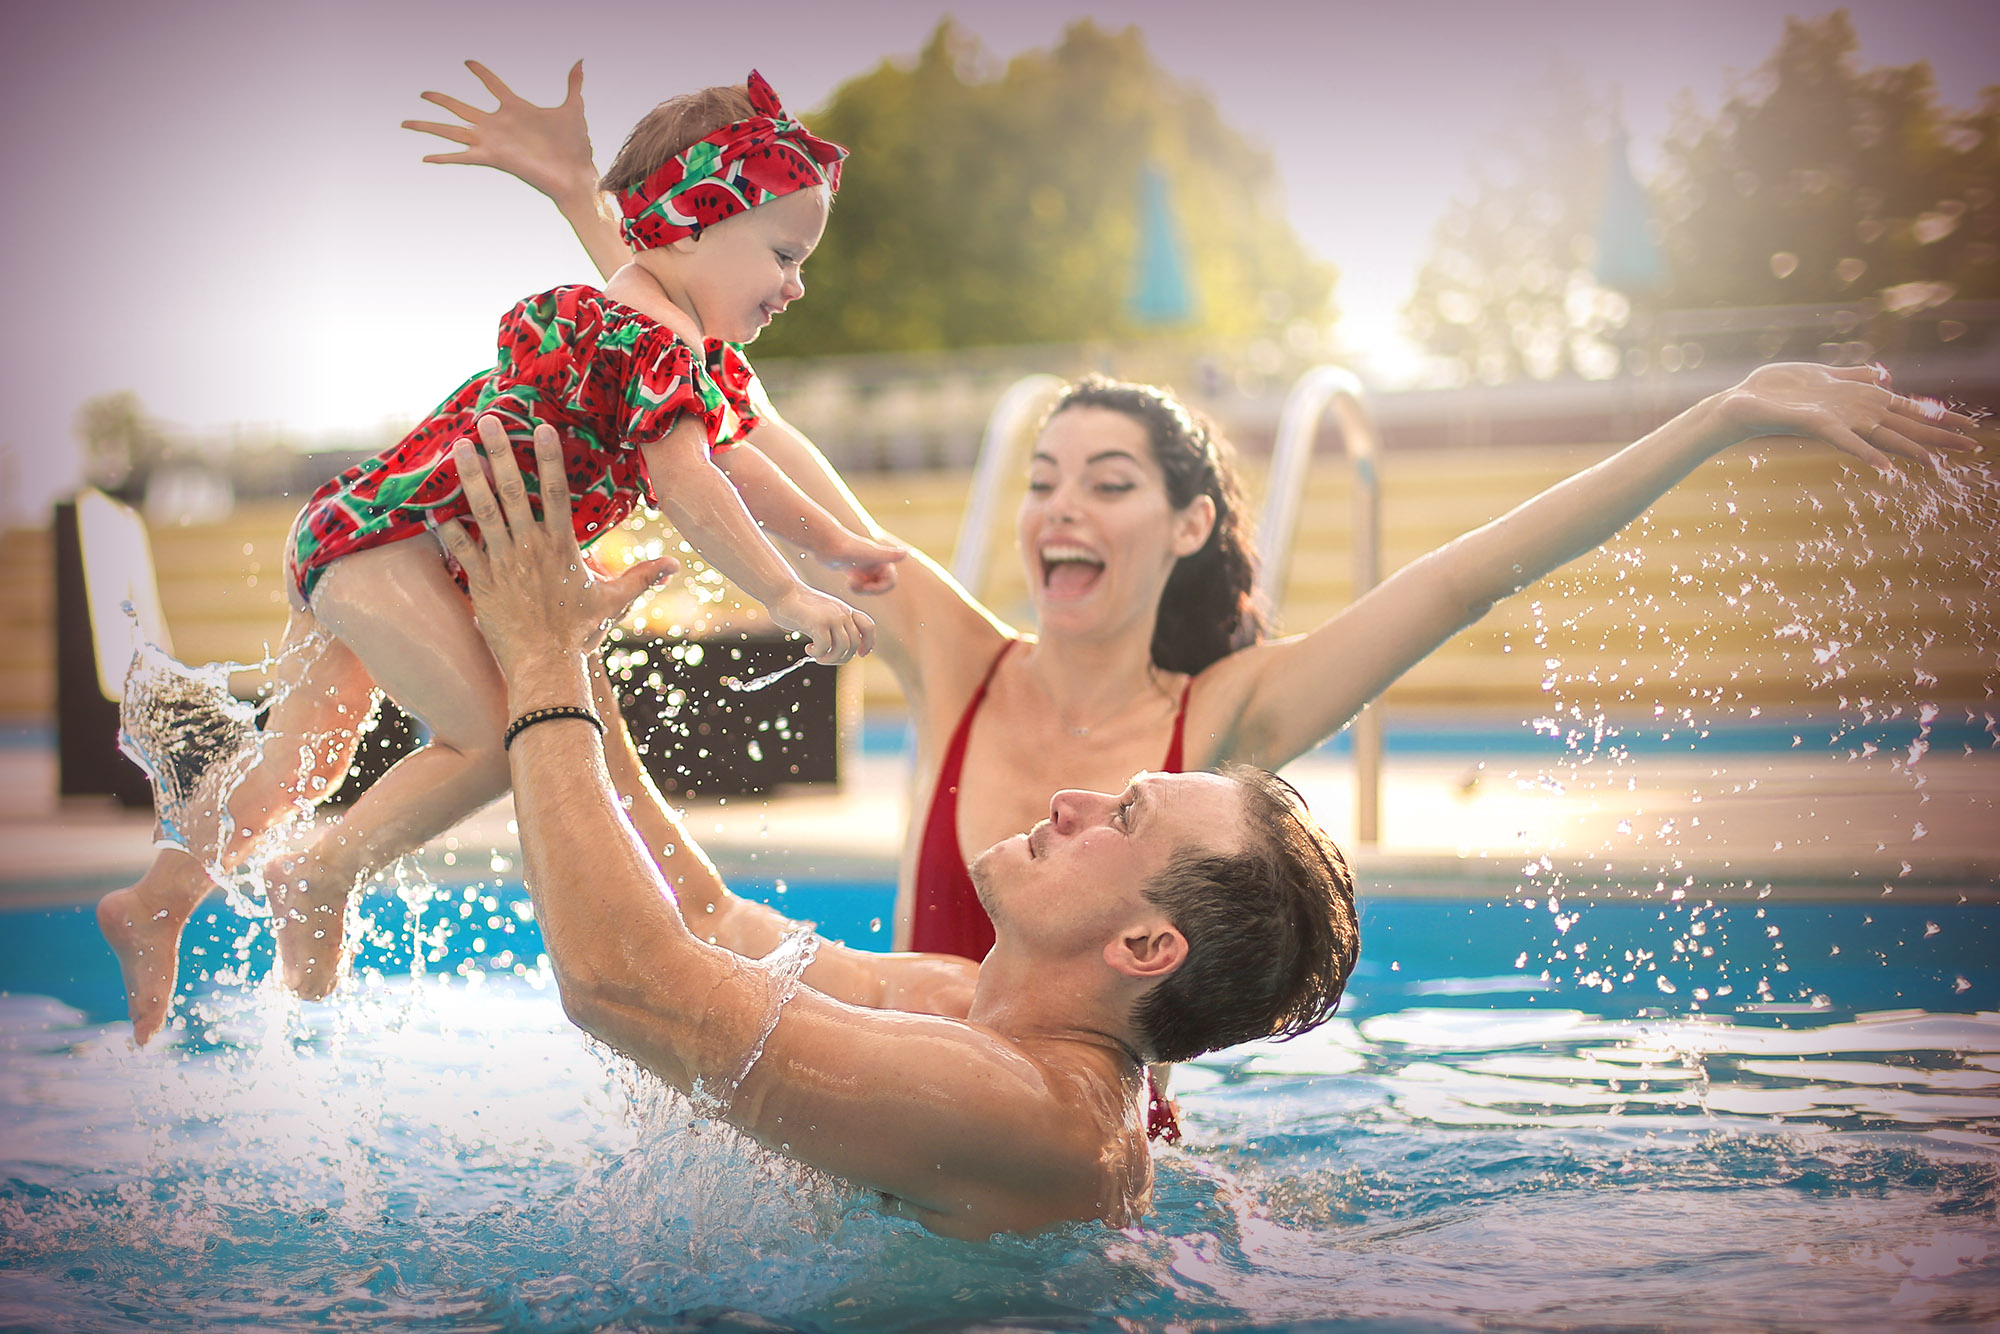 A happy family enjoying time in the pool. Some helpful tips and advice for pool safety for kids and families.